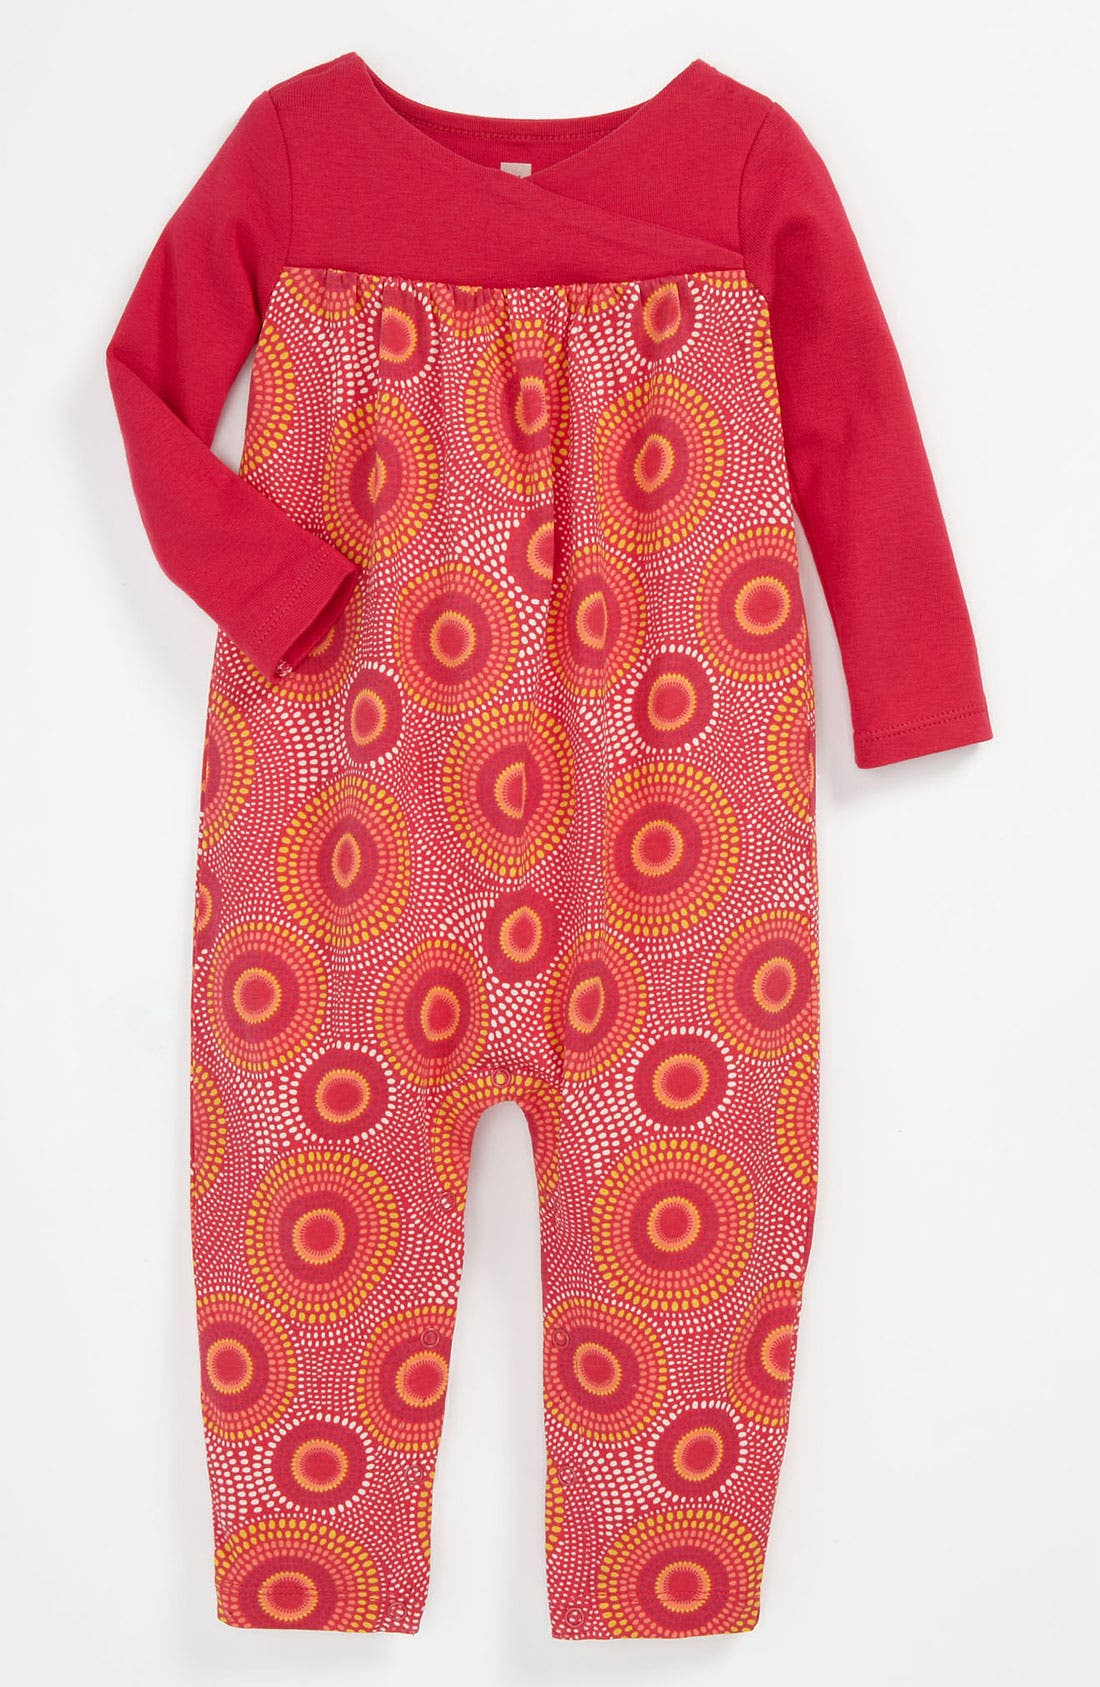 Alternate Image 1 Selected - Tea Collection 'Elim' Coveralls (Baby)